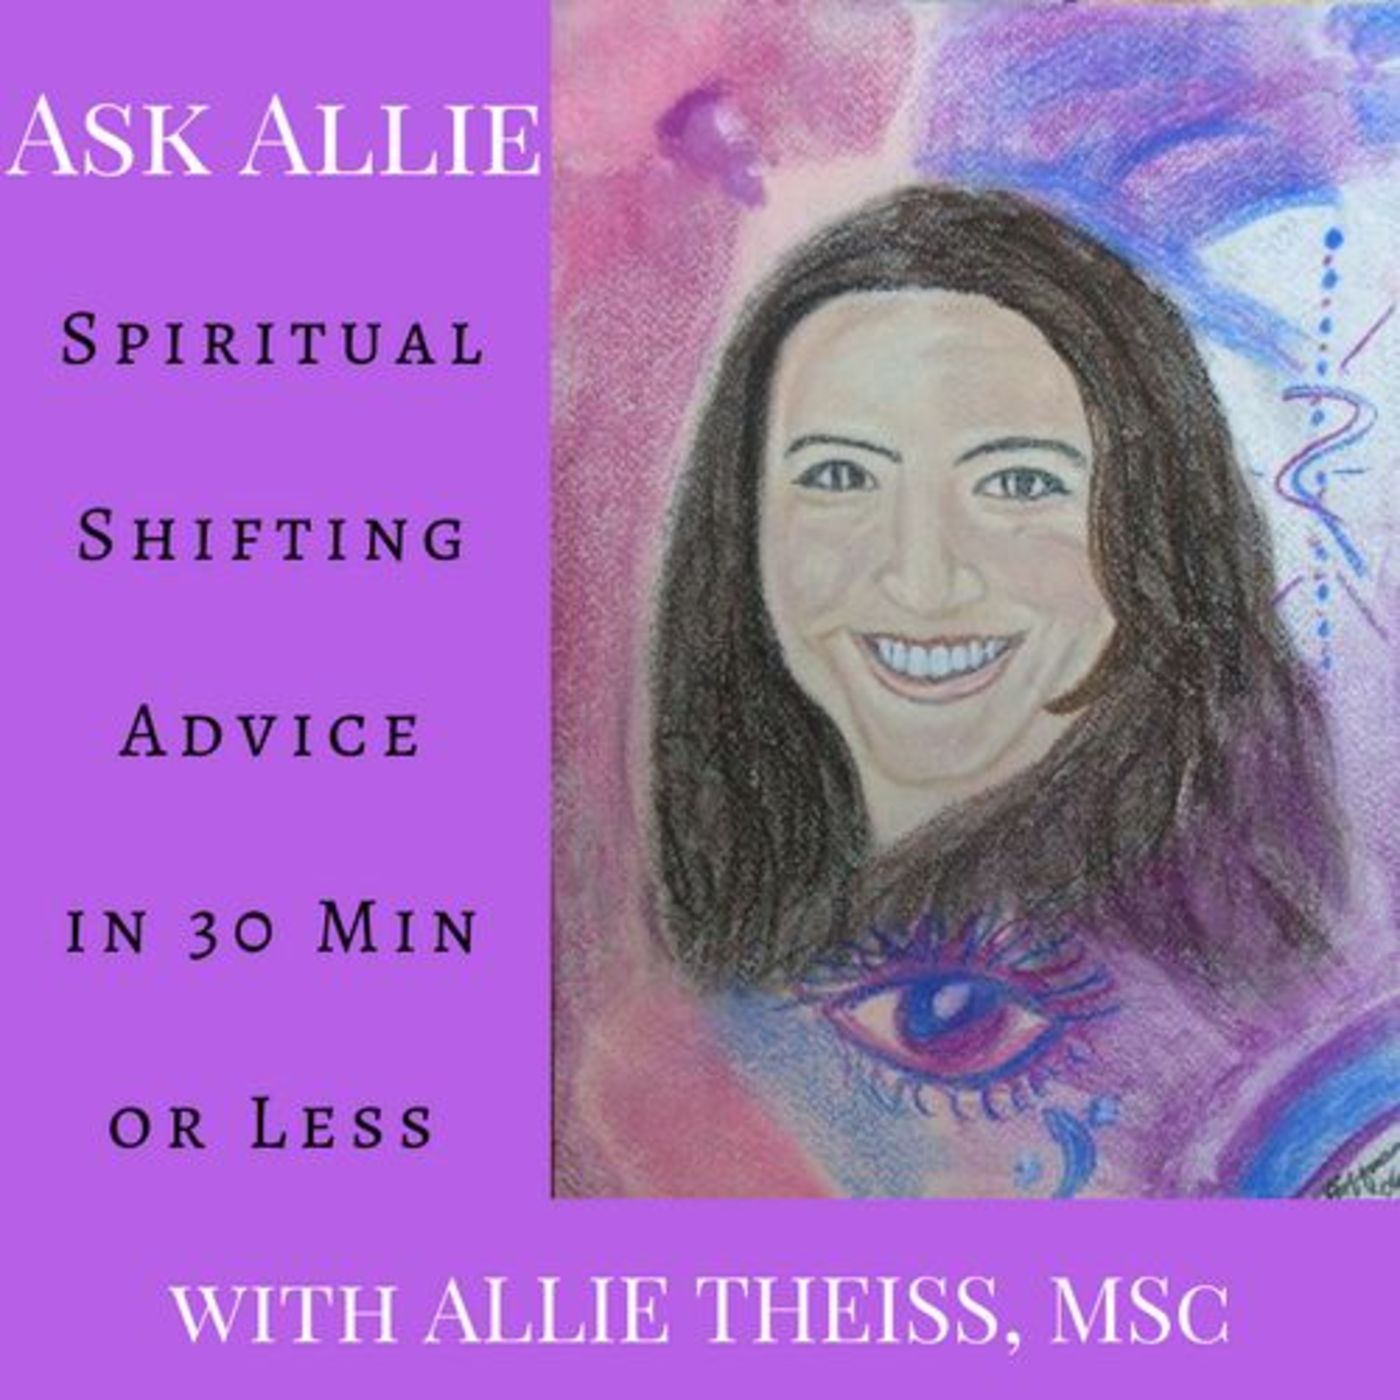 Ask Allie| Spiritual-Shifting Advice for Busy People